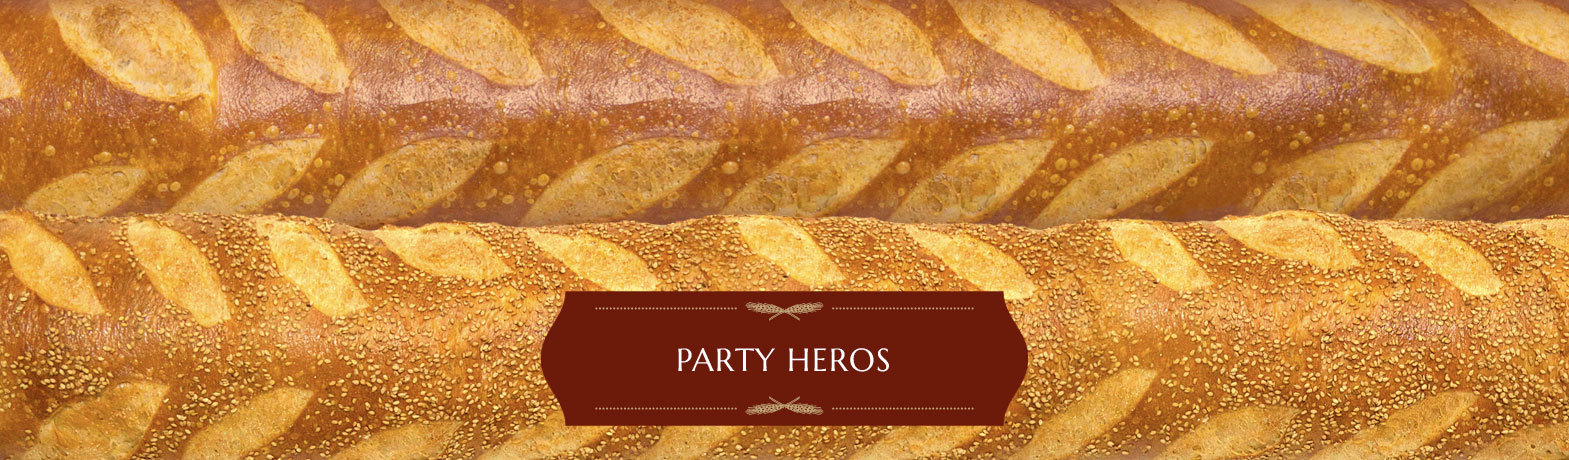 AMBx-Web-HEADERS-PartyHeros